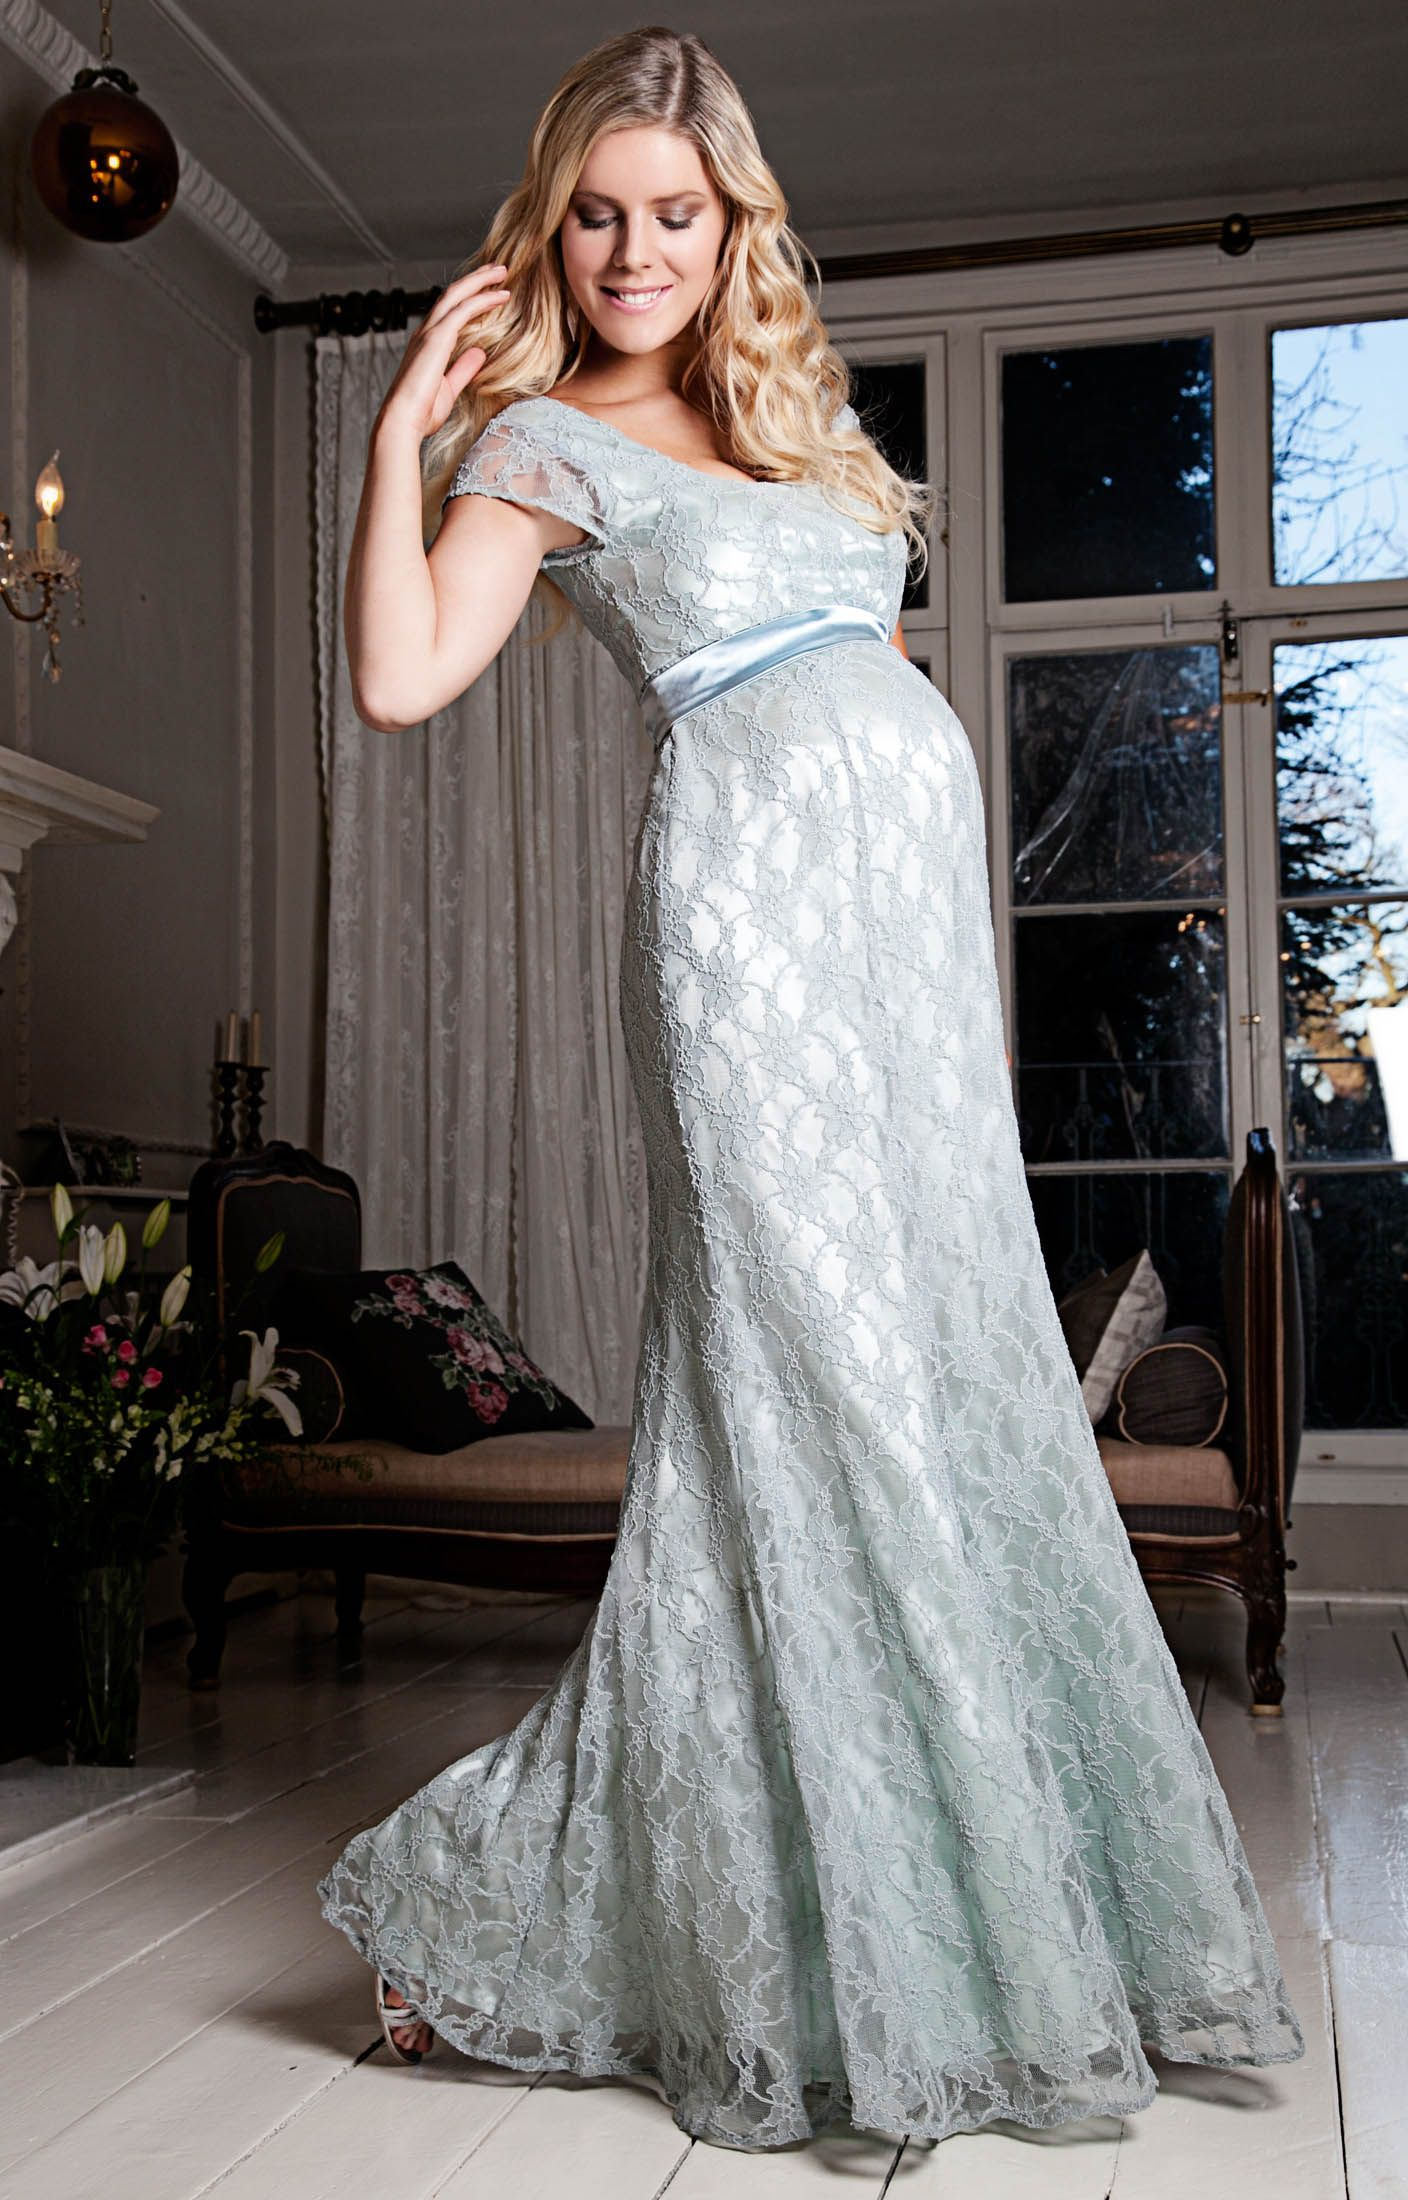 Eva Lace Gown | Maternity gowns, Tiffany rose and Full length skirts